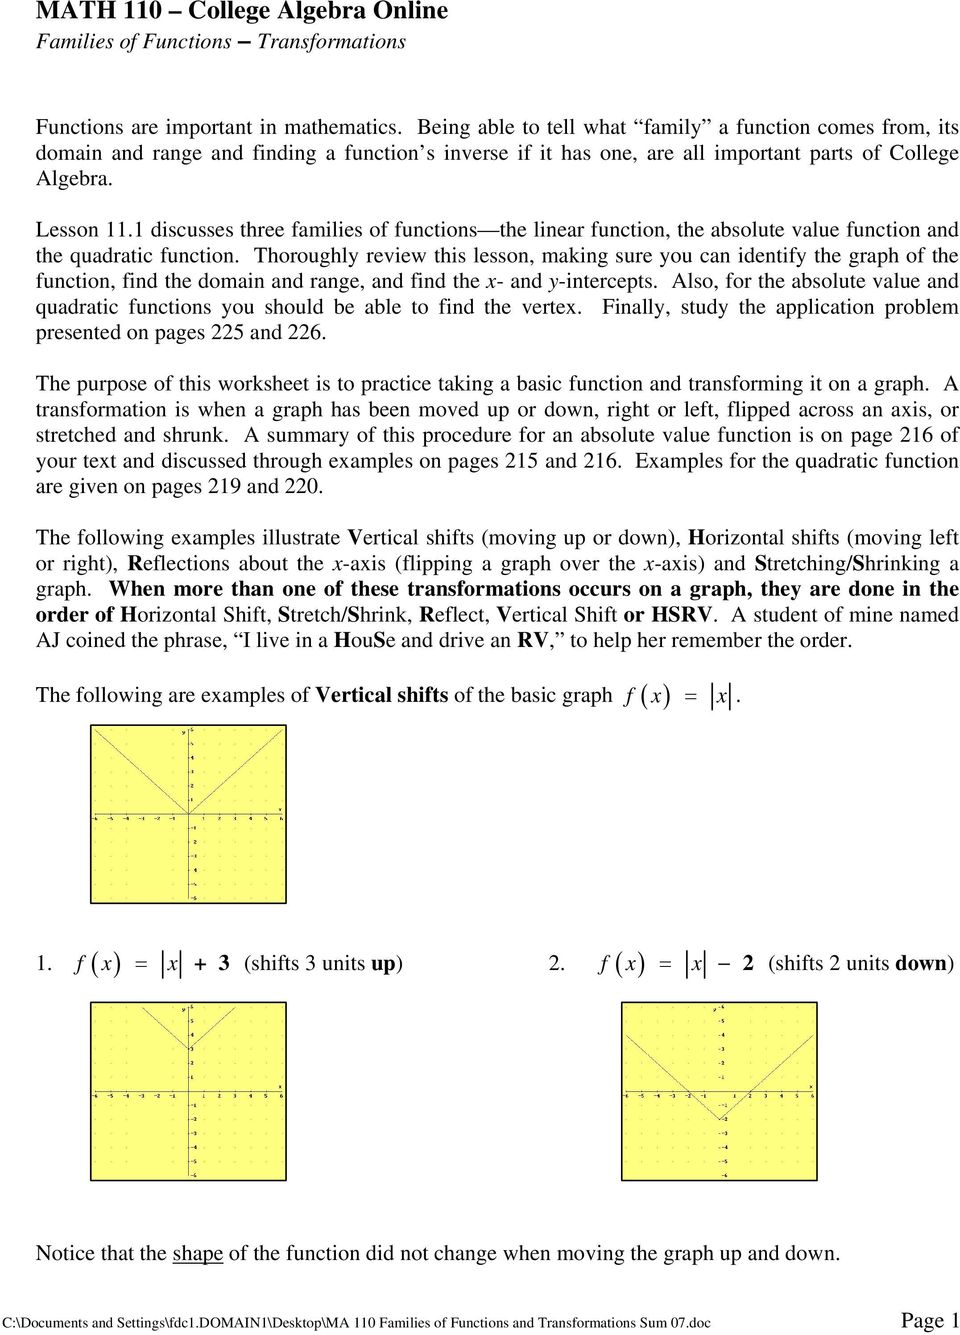 MATH 110 College Algebra Online Families of Functions